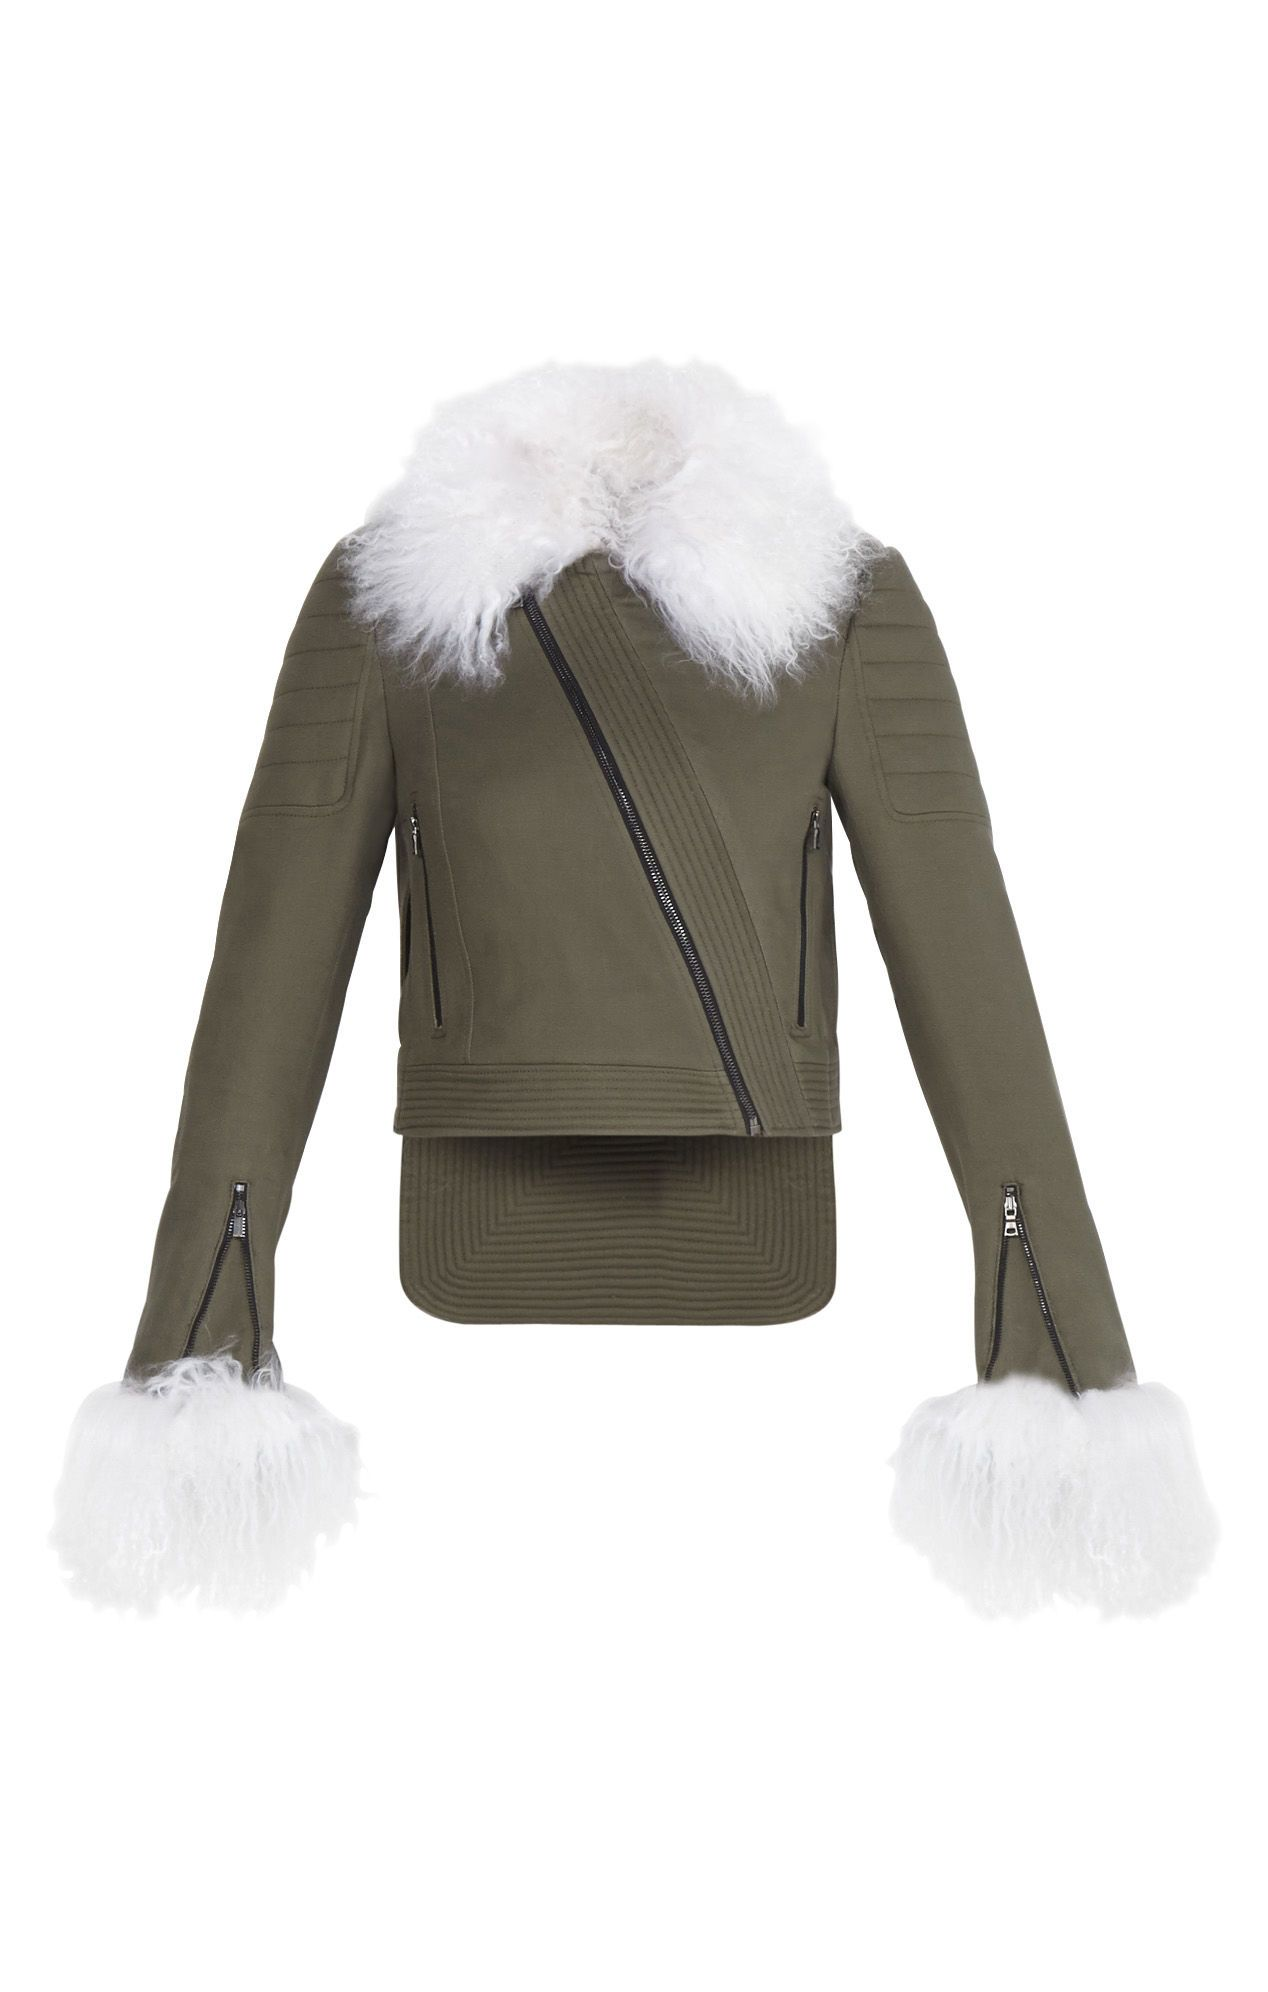 This versatile piece creates a fresh take on the urban-grudge aesthetic with an unexpected mix of olive-toned twill and contrast lamb fur. Trapunto stitching and asymmetrical zipper details add an effortless utilitarian effect. Victor Jacket